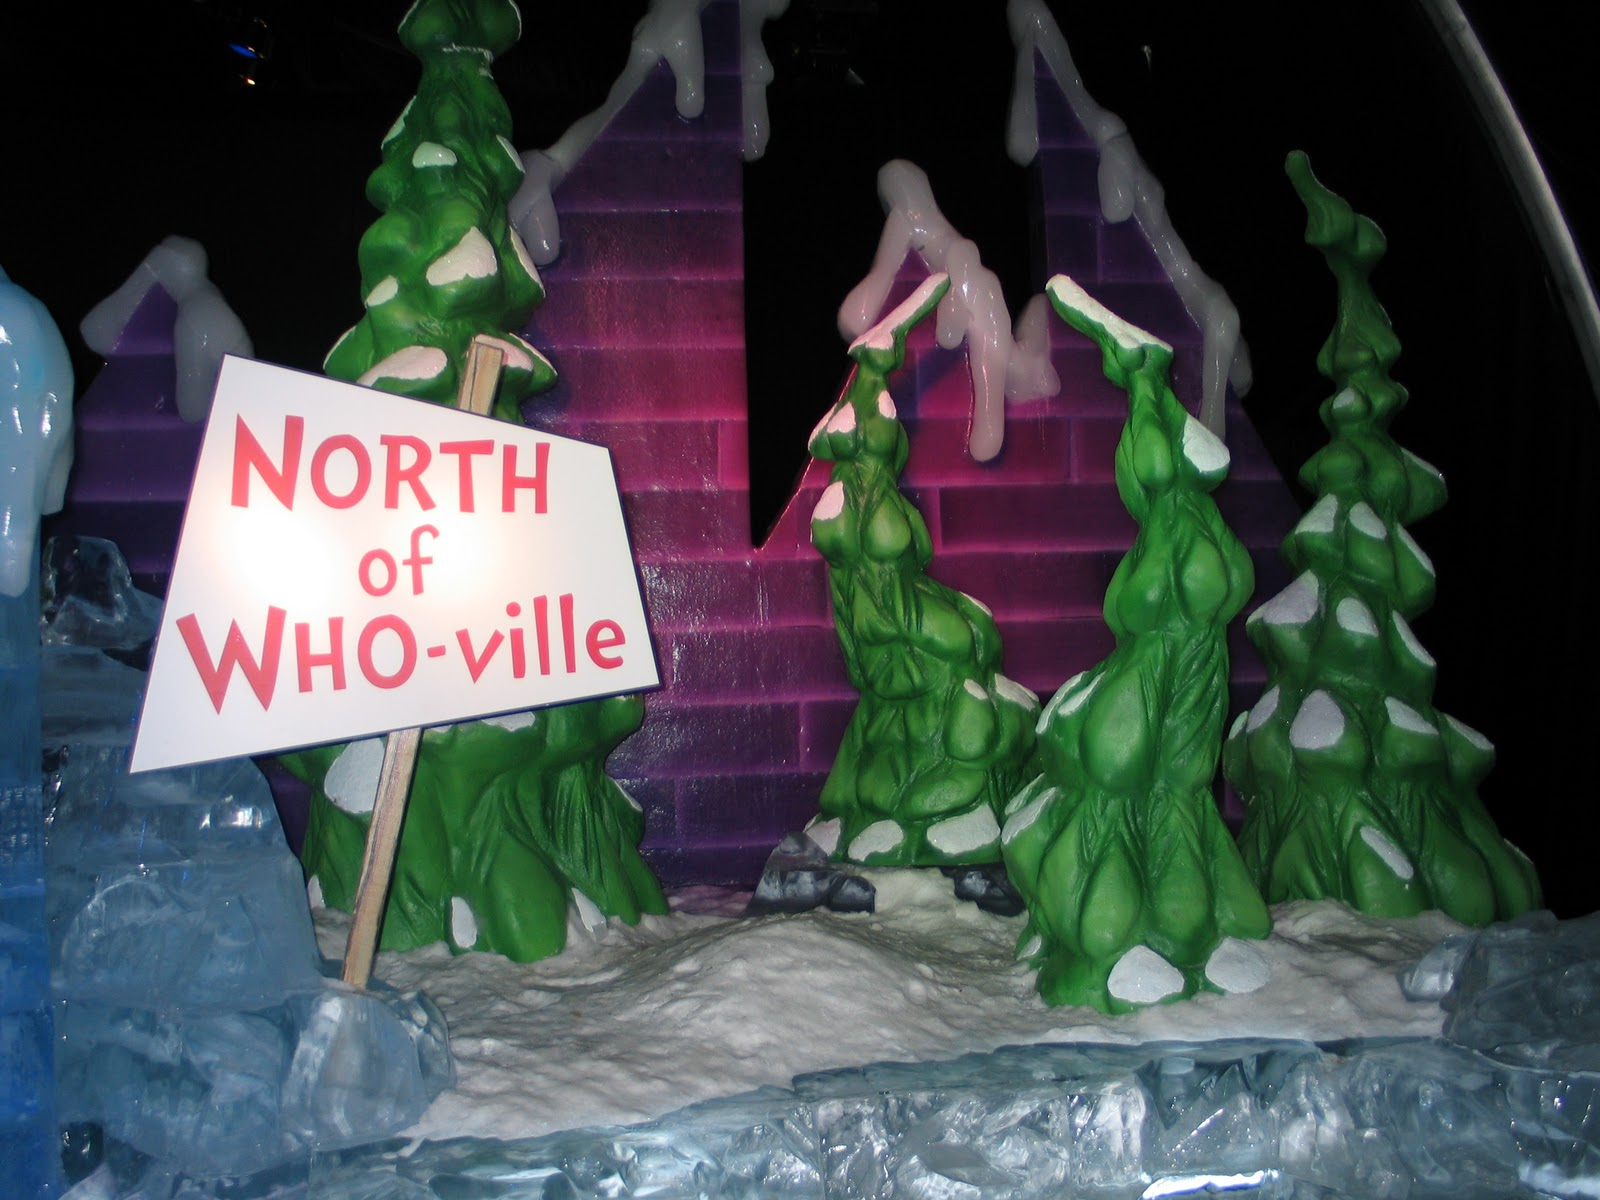 Dr seuss whoville houses how the grinch stole christmas